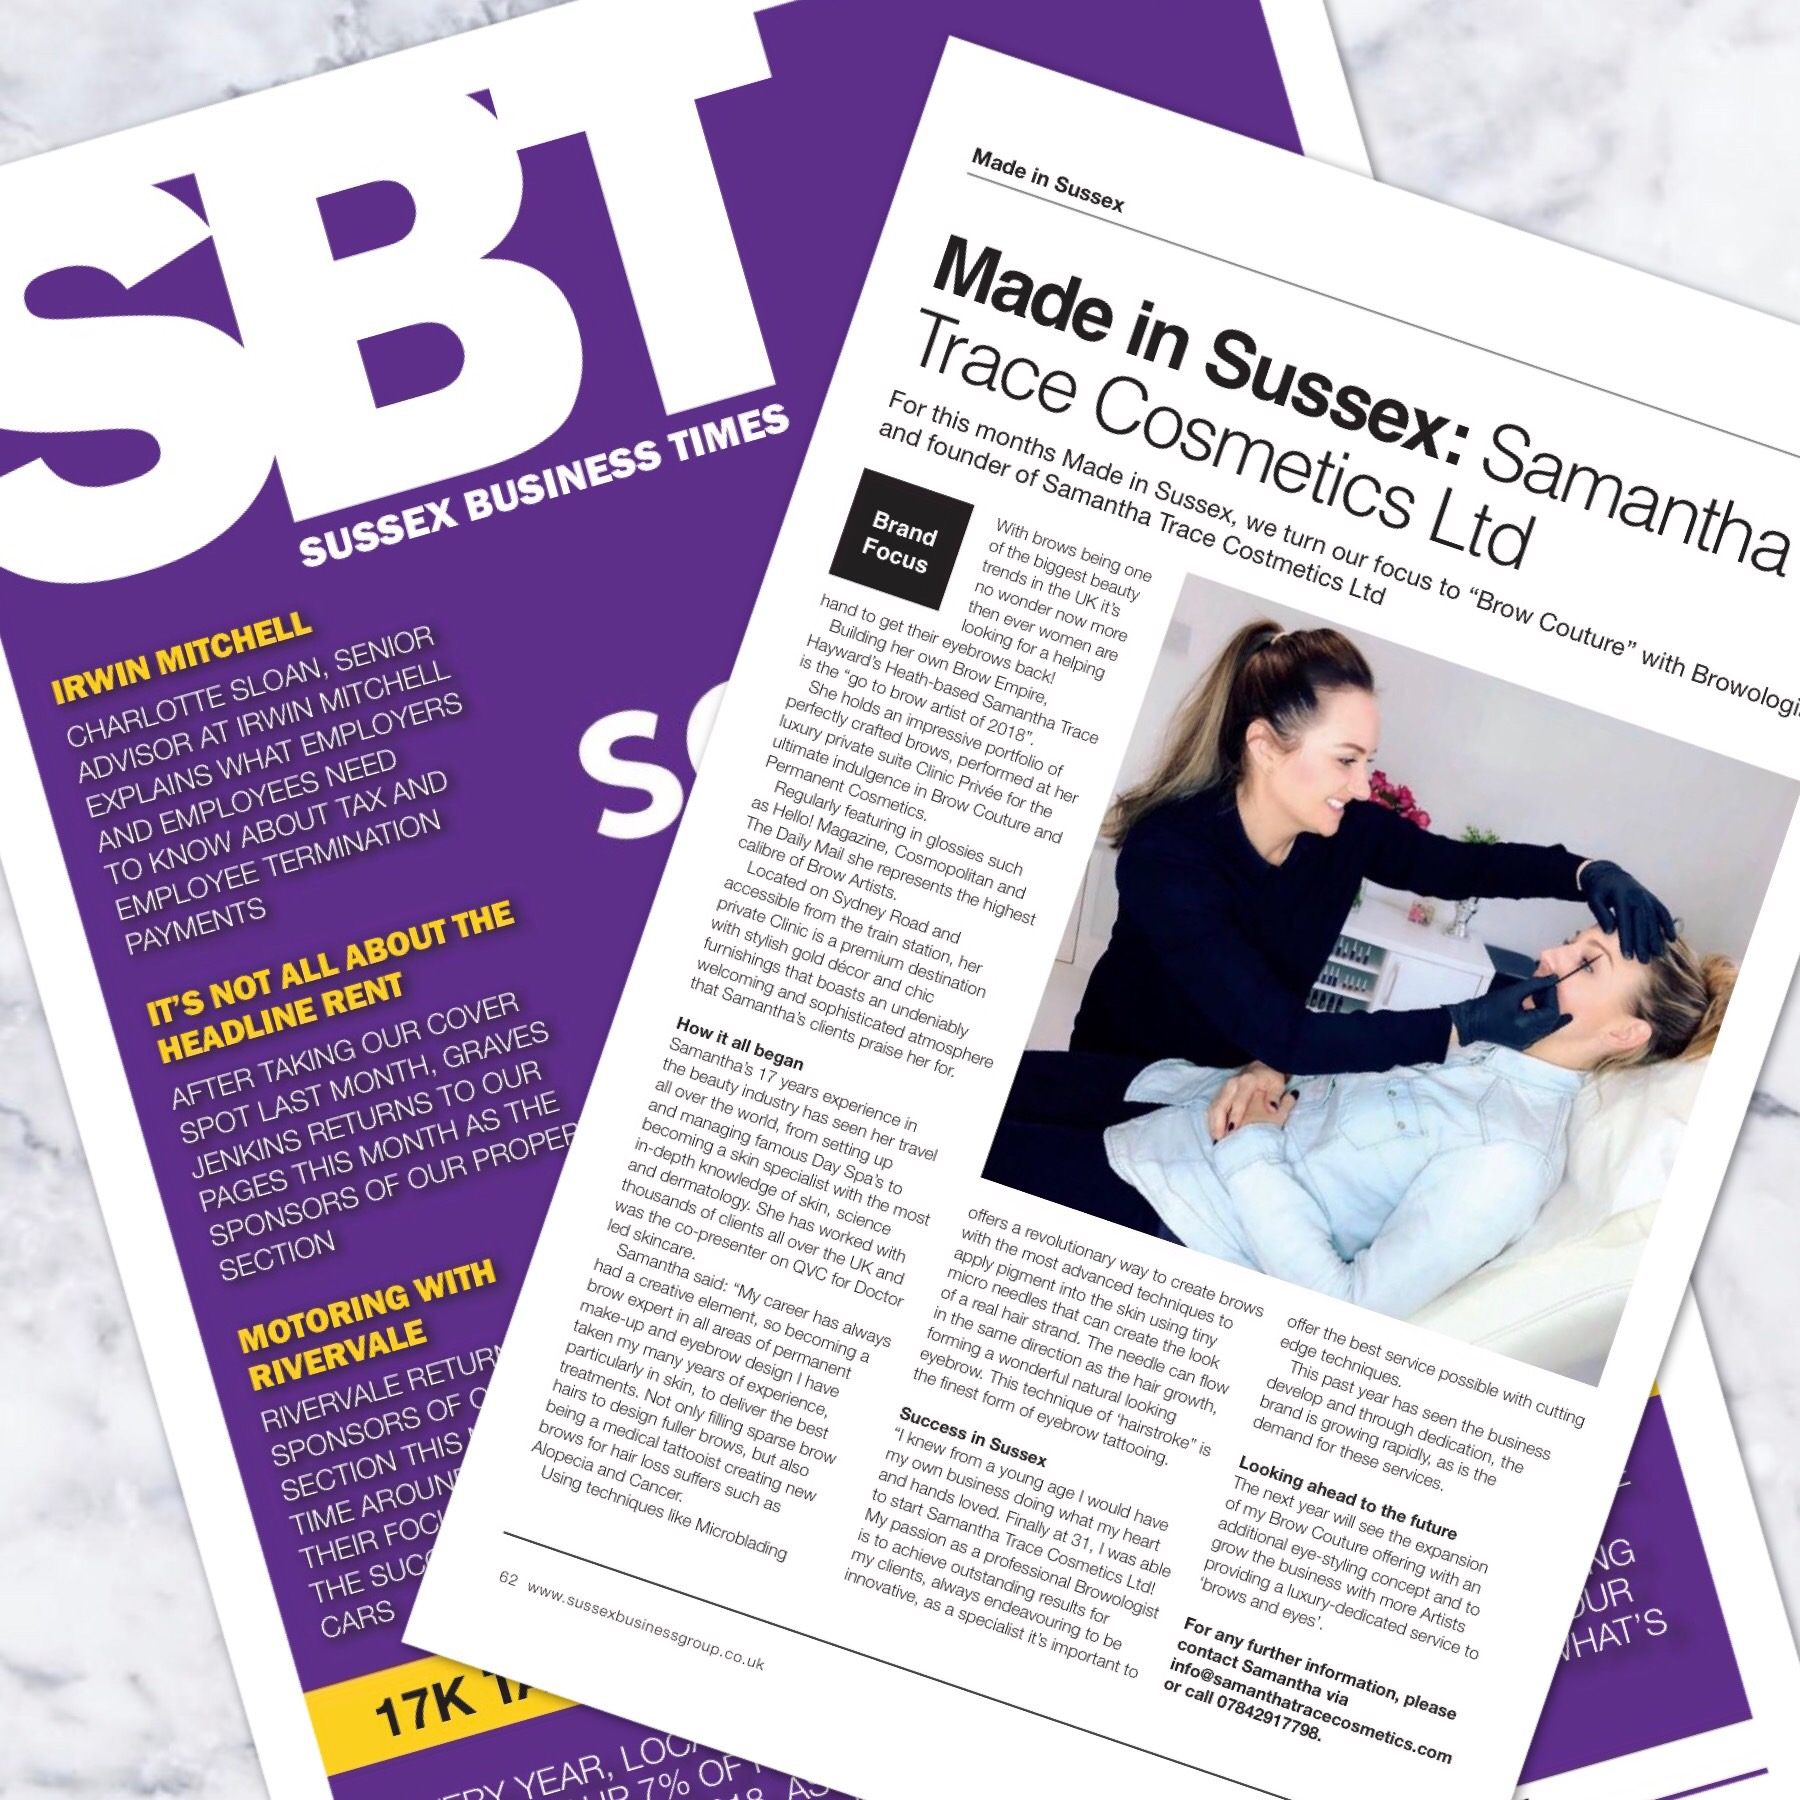 Sussex business times